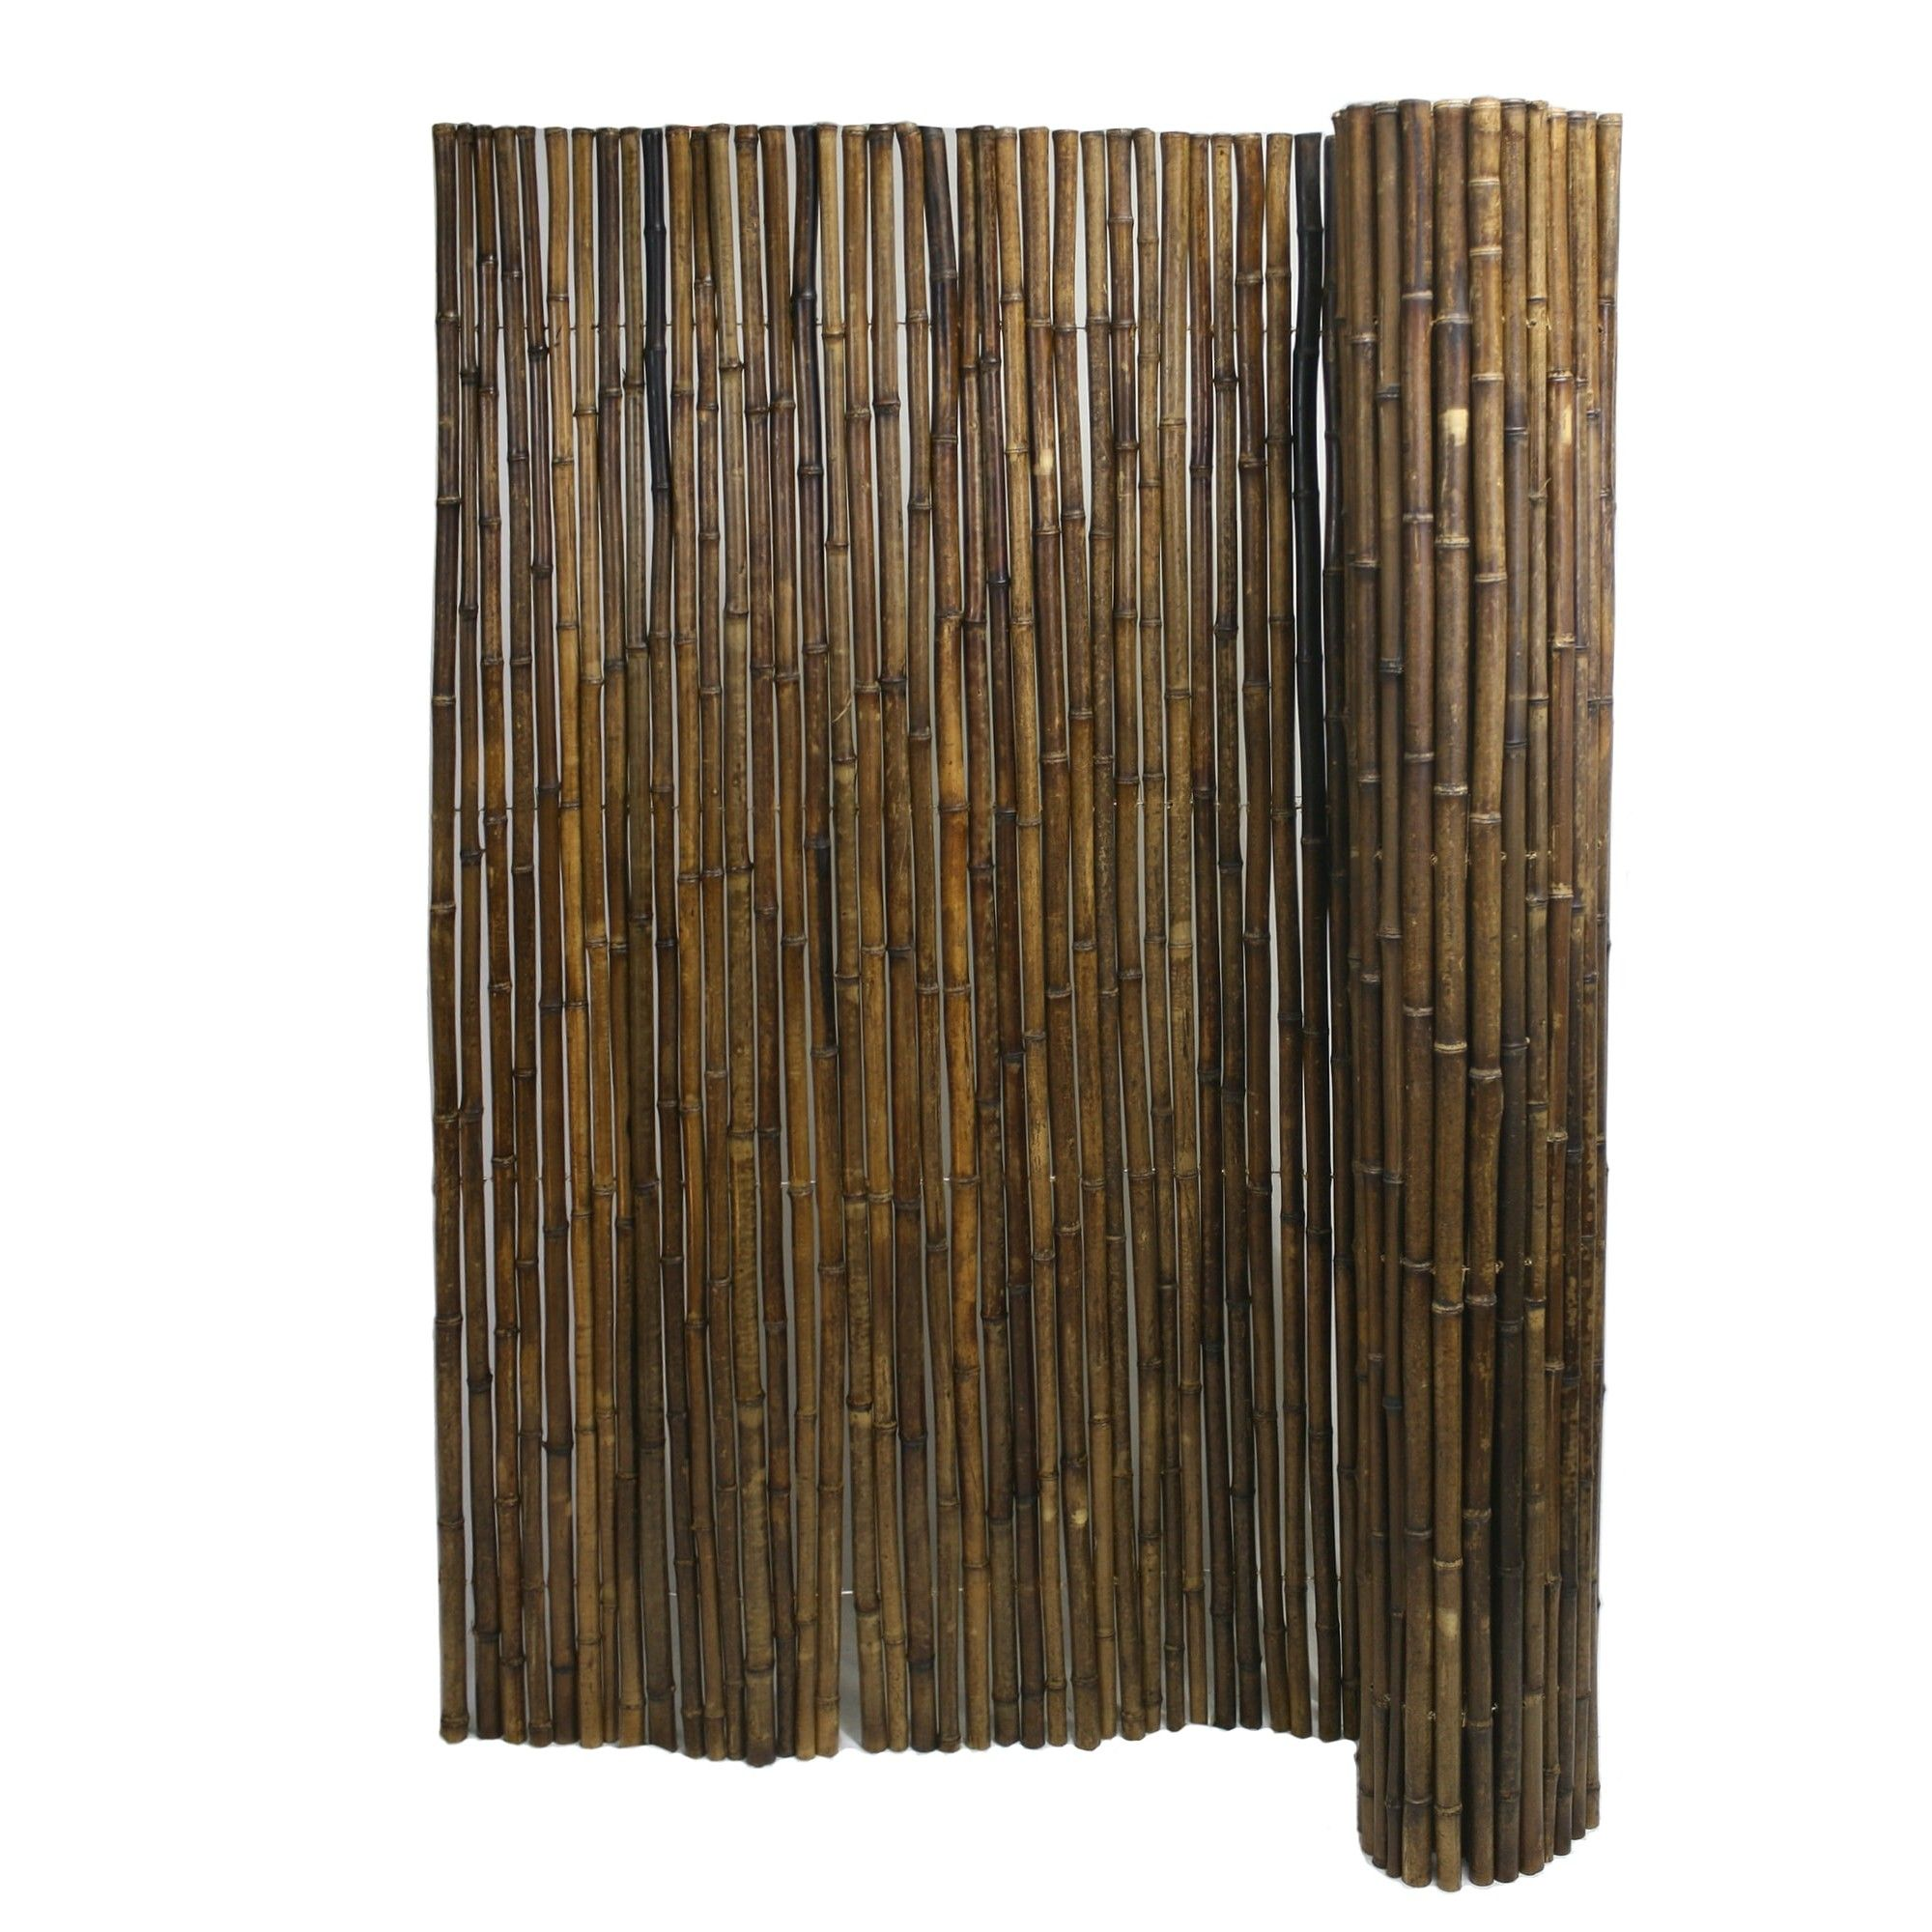 Bamboo Fencing Caramel Brown Finish 1 X 8 X 8 Bamboo Fence Fence Panels Bamboo Garden Fences